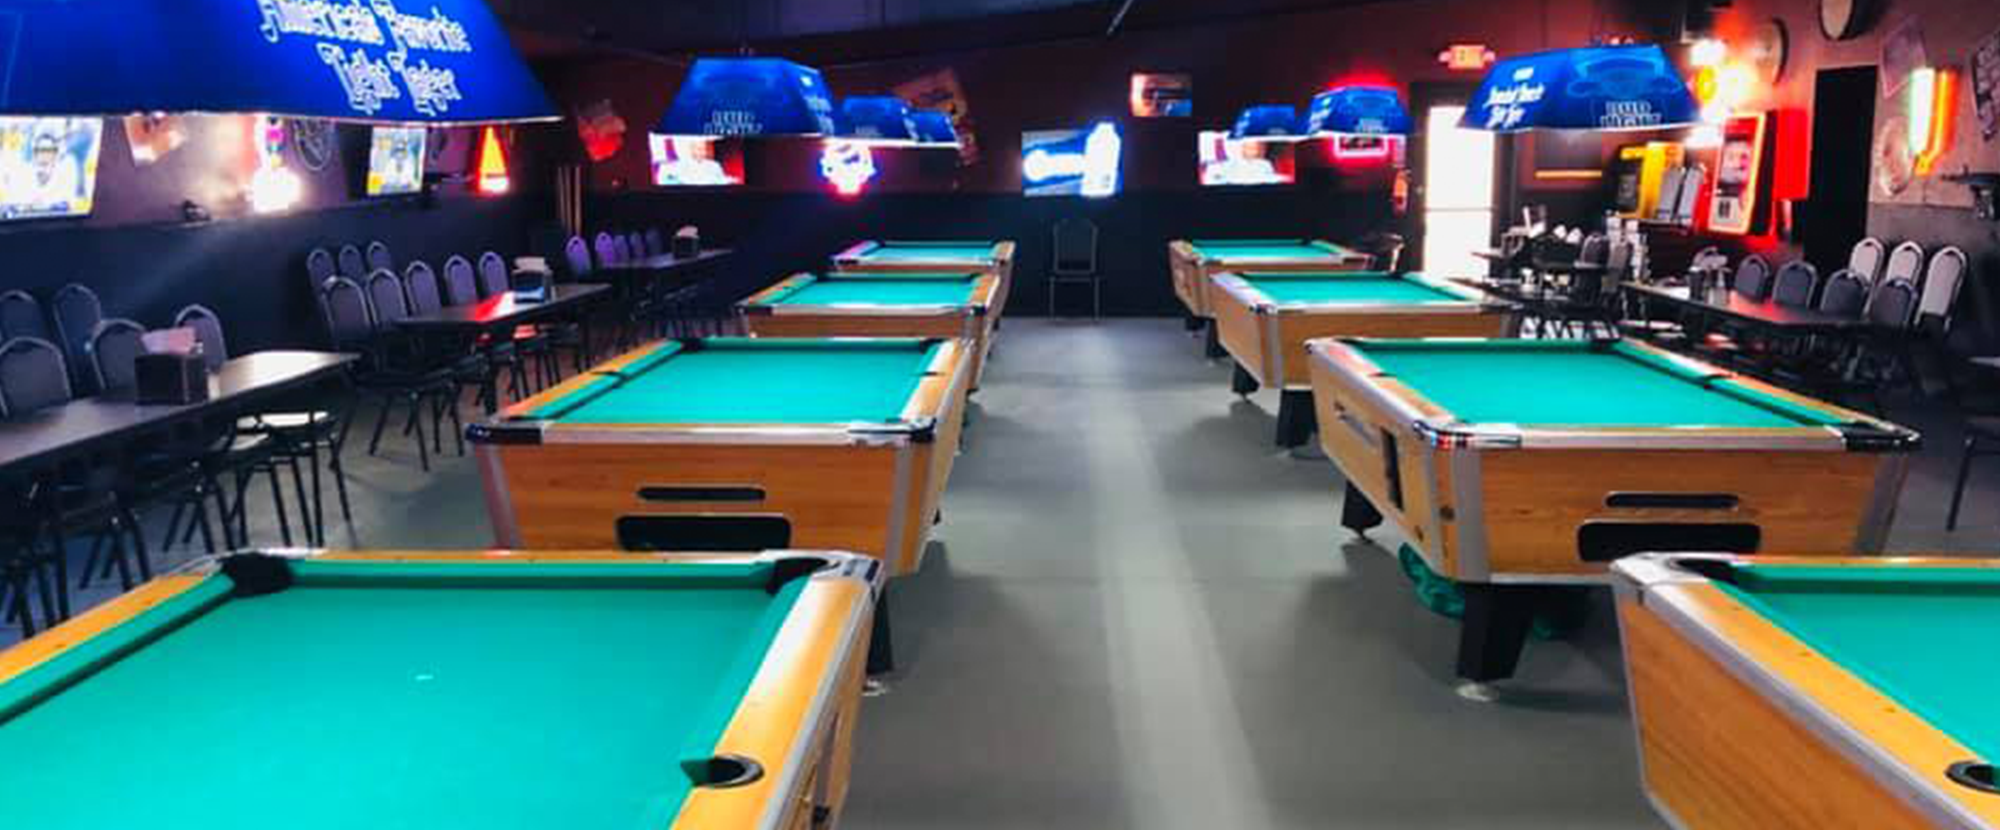 The Fort Saloon's Pool Hall is Now Open!